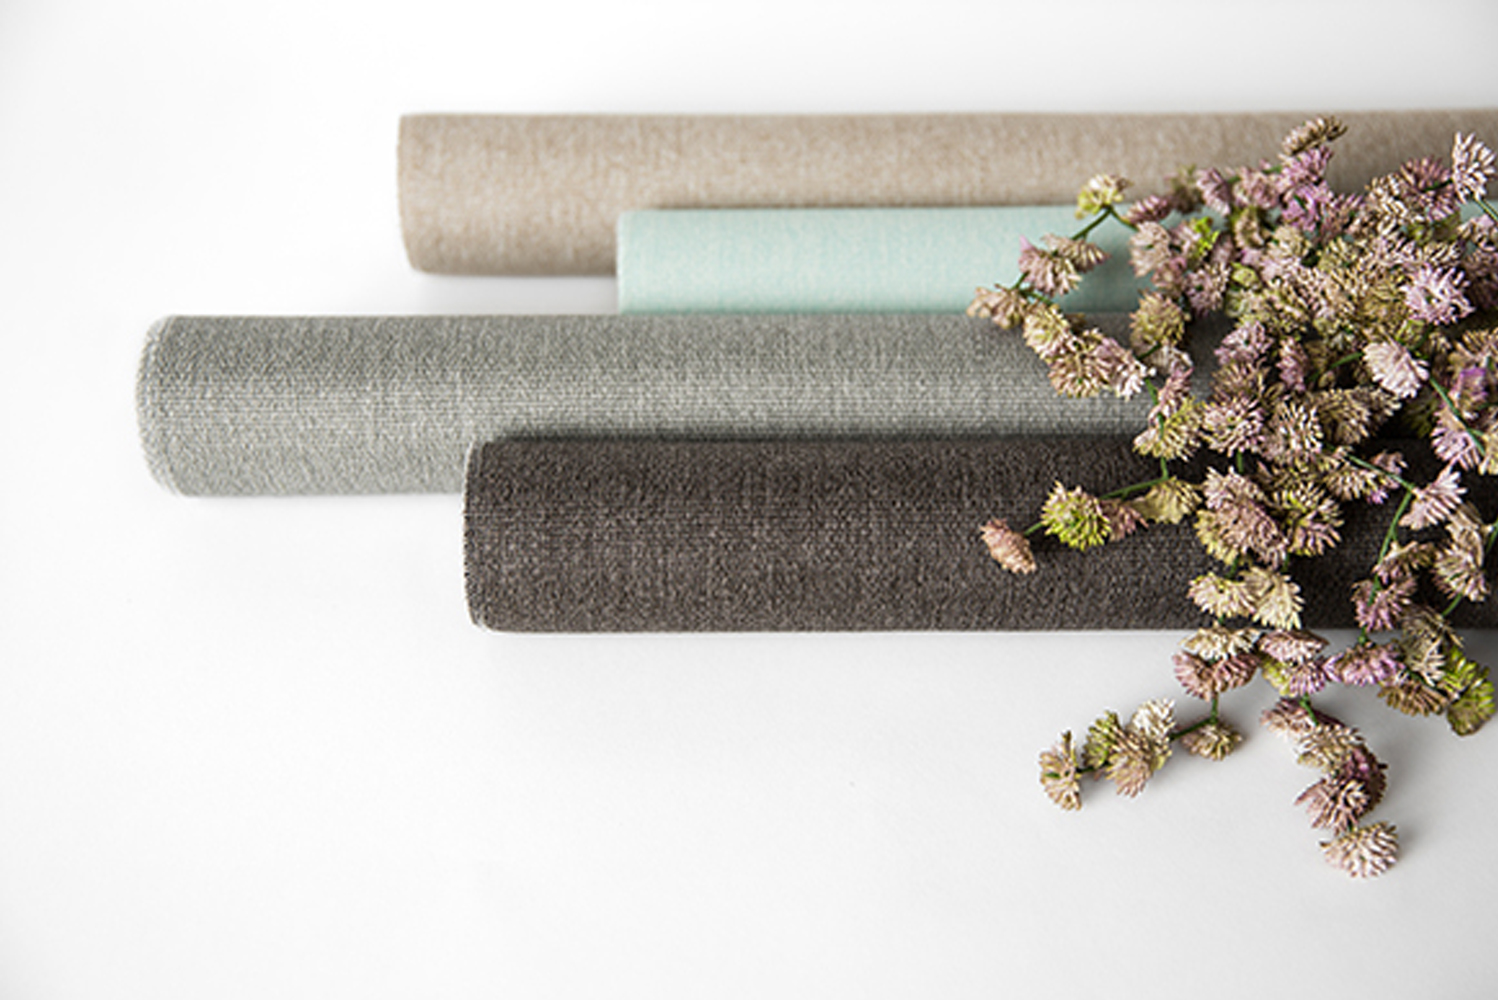 These three coordinating patterns are available in nine colorways, made with Bella-Dura Solution-Dyed Polypropylene and are all protected by a Greenshield finish.